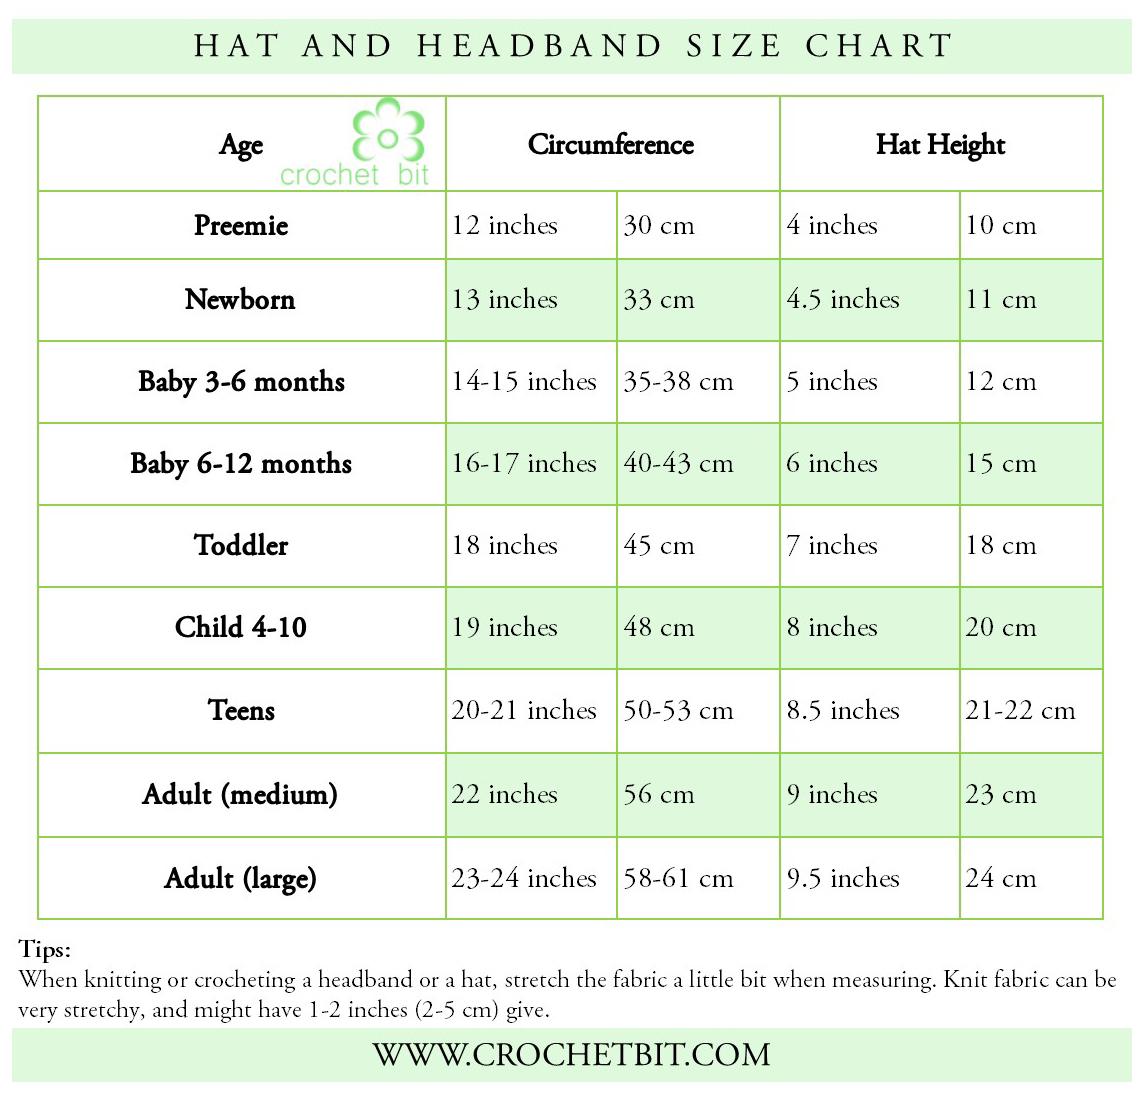 Us shoe conversion chart gallery free any chart examples us shoe conversion chart images free any chart examples us shoe conversion chart images free any nvjuhfo Images